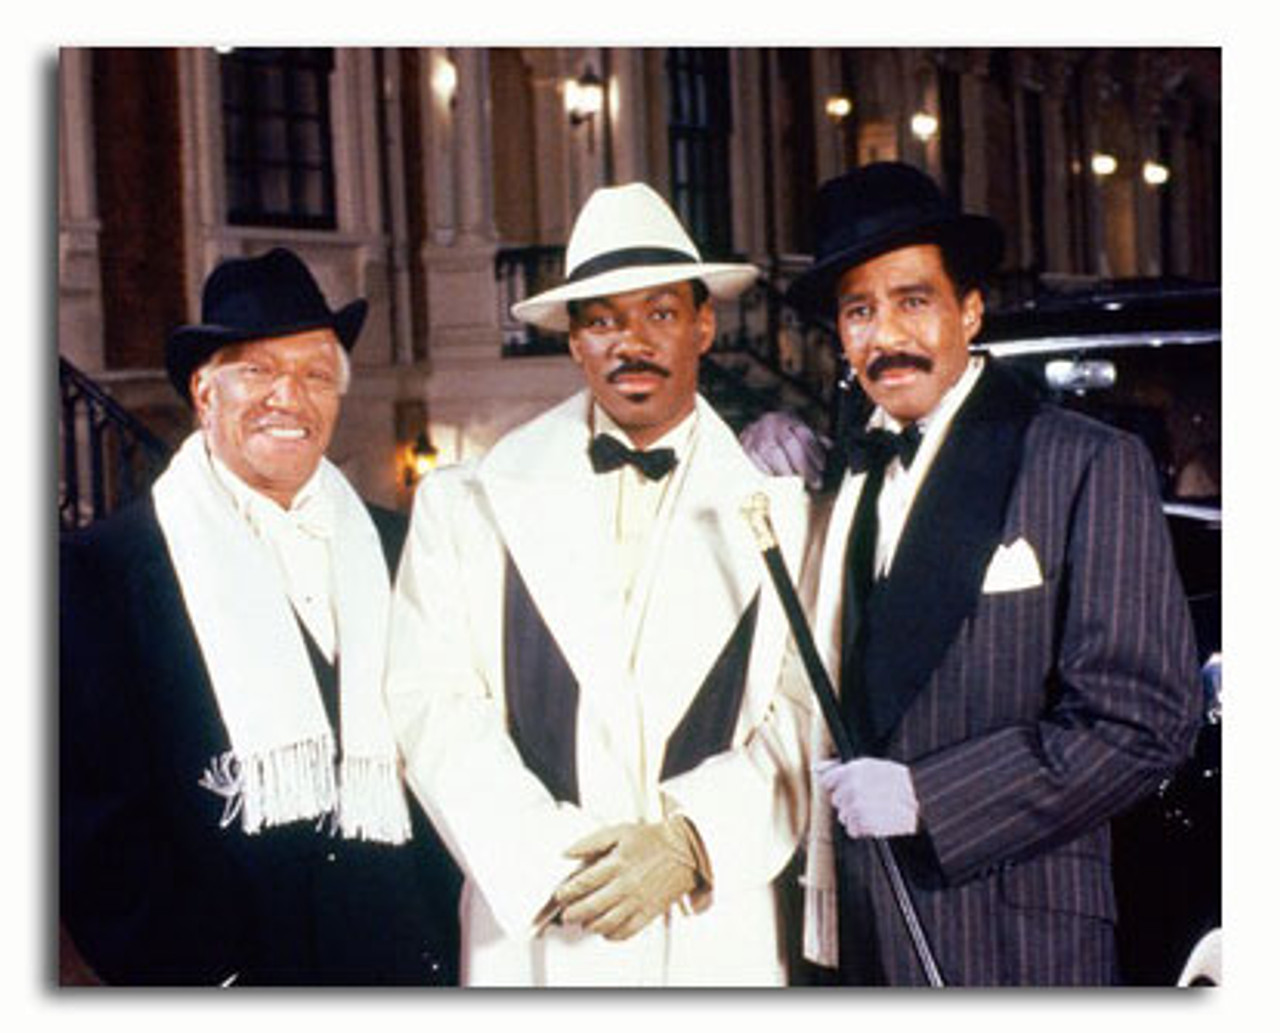 ss3445143_-_photograph_of_redd_foxx_as_bennie_wilson_eddie_murphy_as_quick_richard_pryor_as_sugar_ray_from_harlem_nights_available_in_4_sizes_framed_or_unframed_buy_now_at_starstills__58992__17877.1394510925.jpg?c=2?imbypass=on